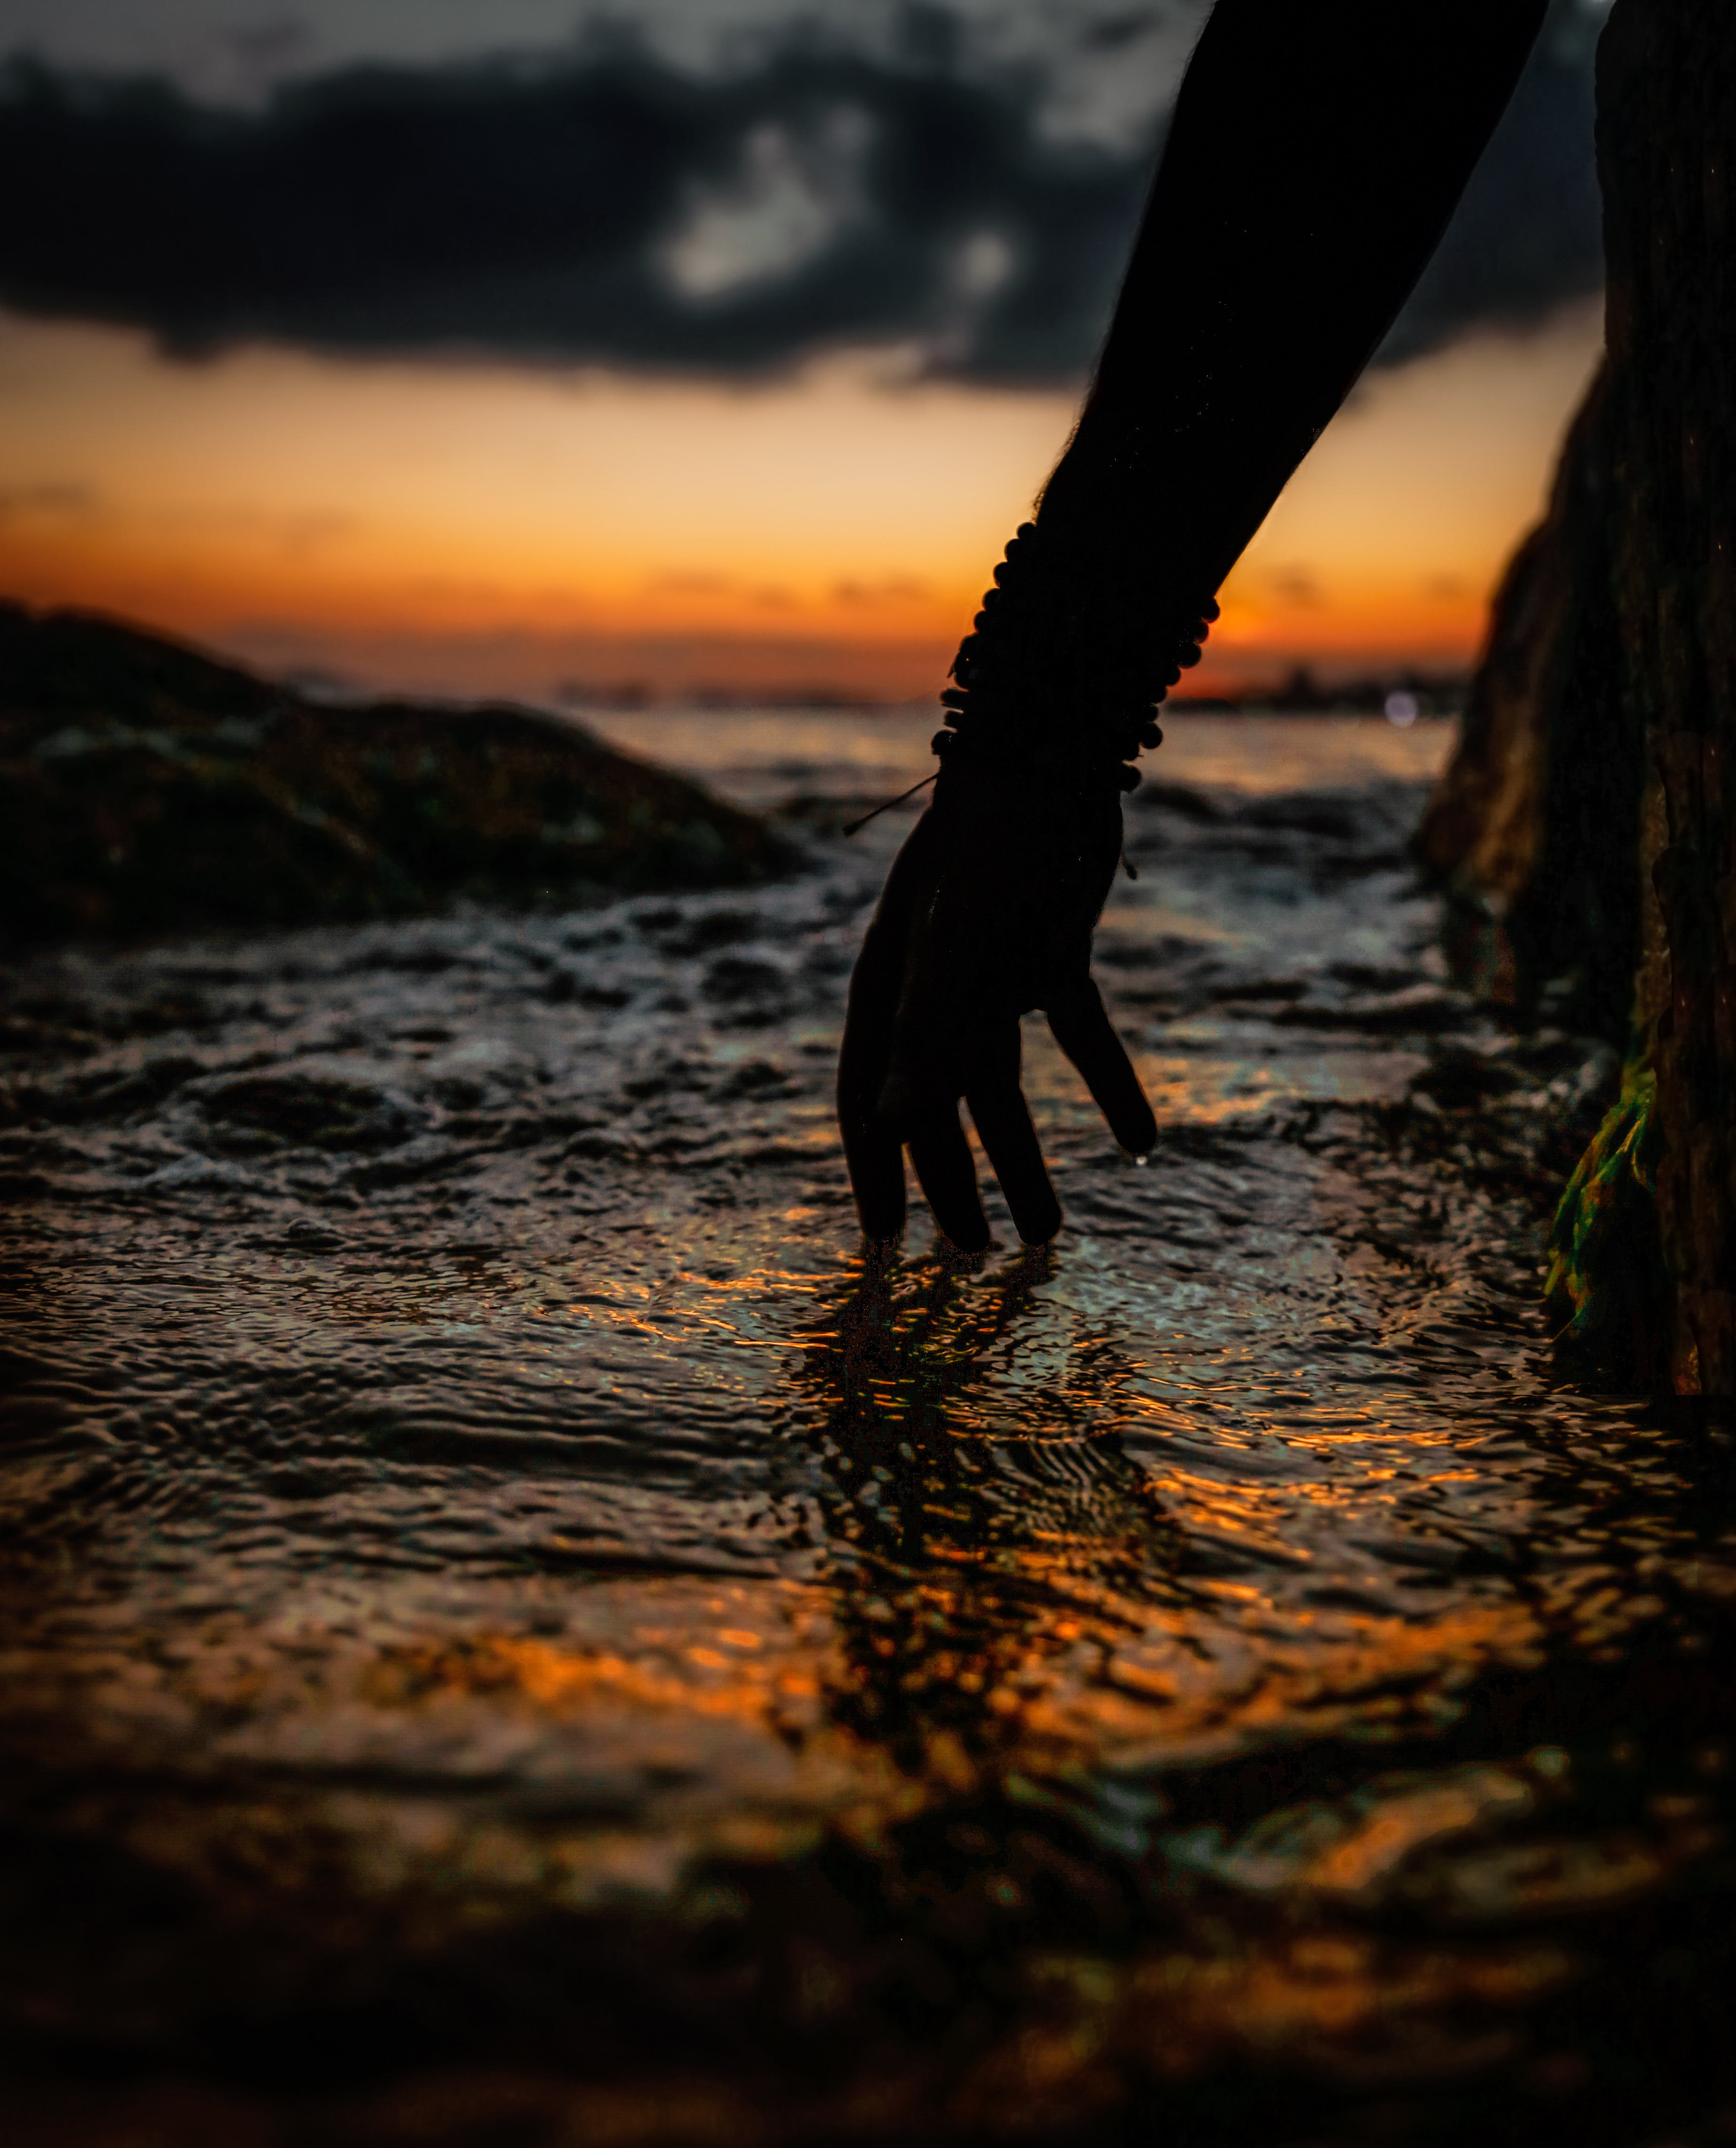 Silhouette of Person's Hand Touching Water during Sunset